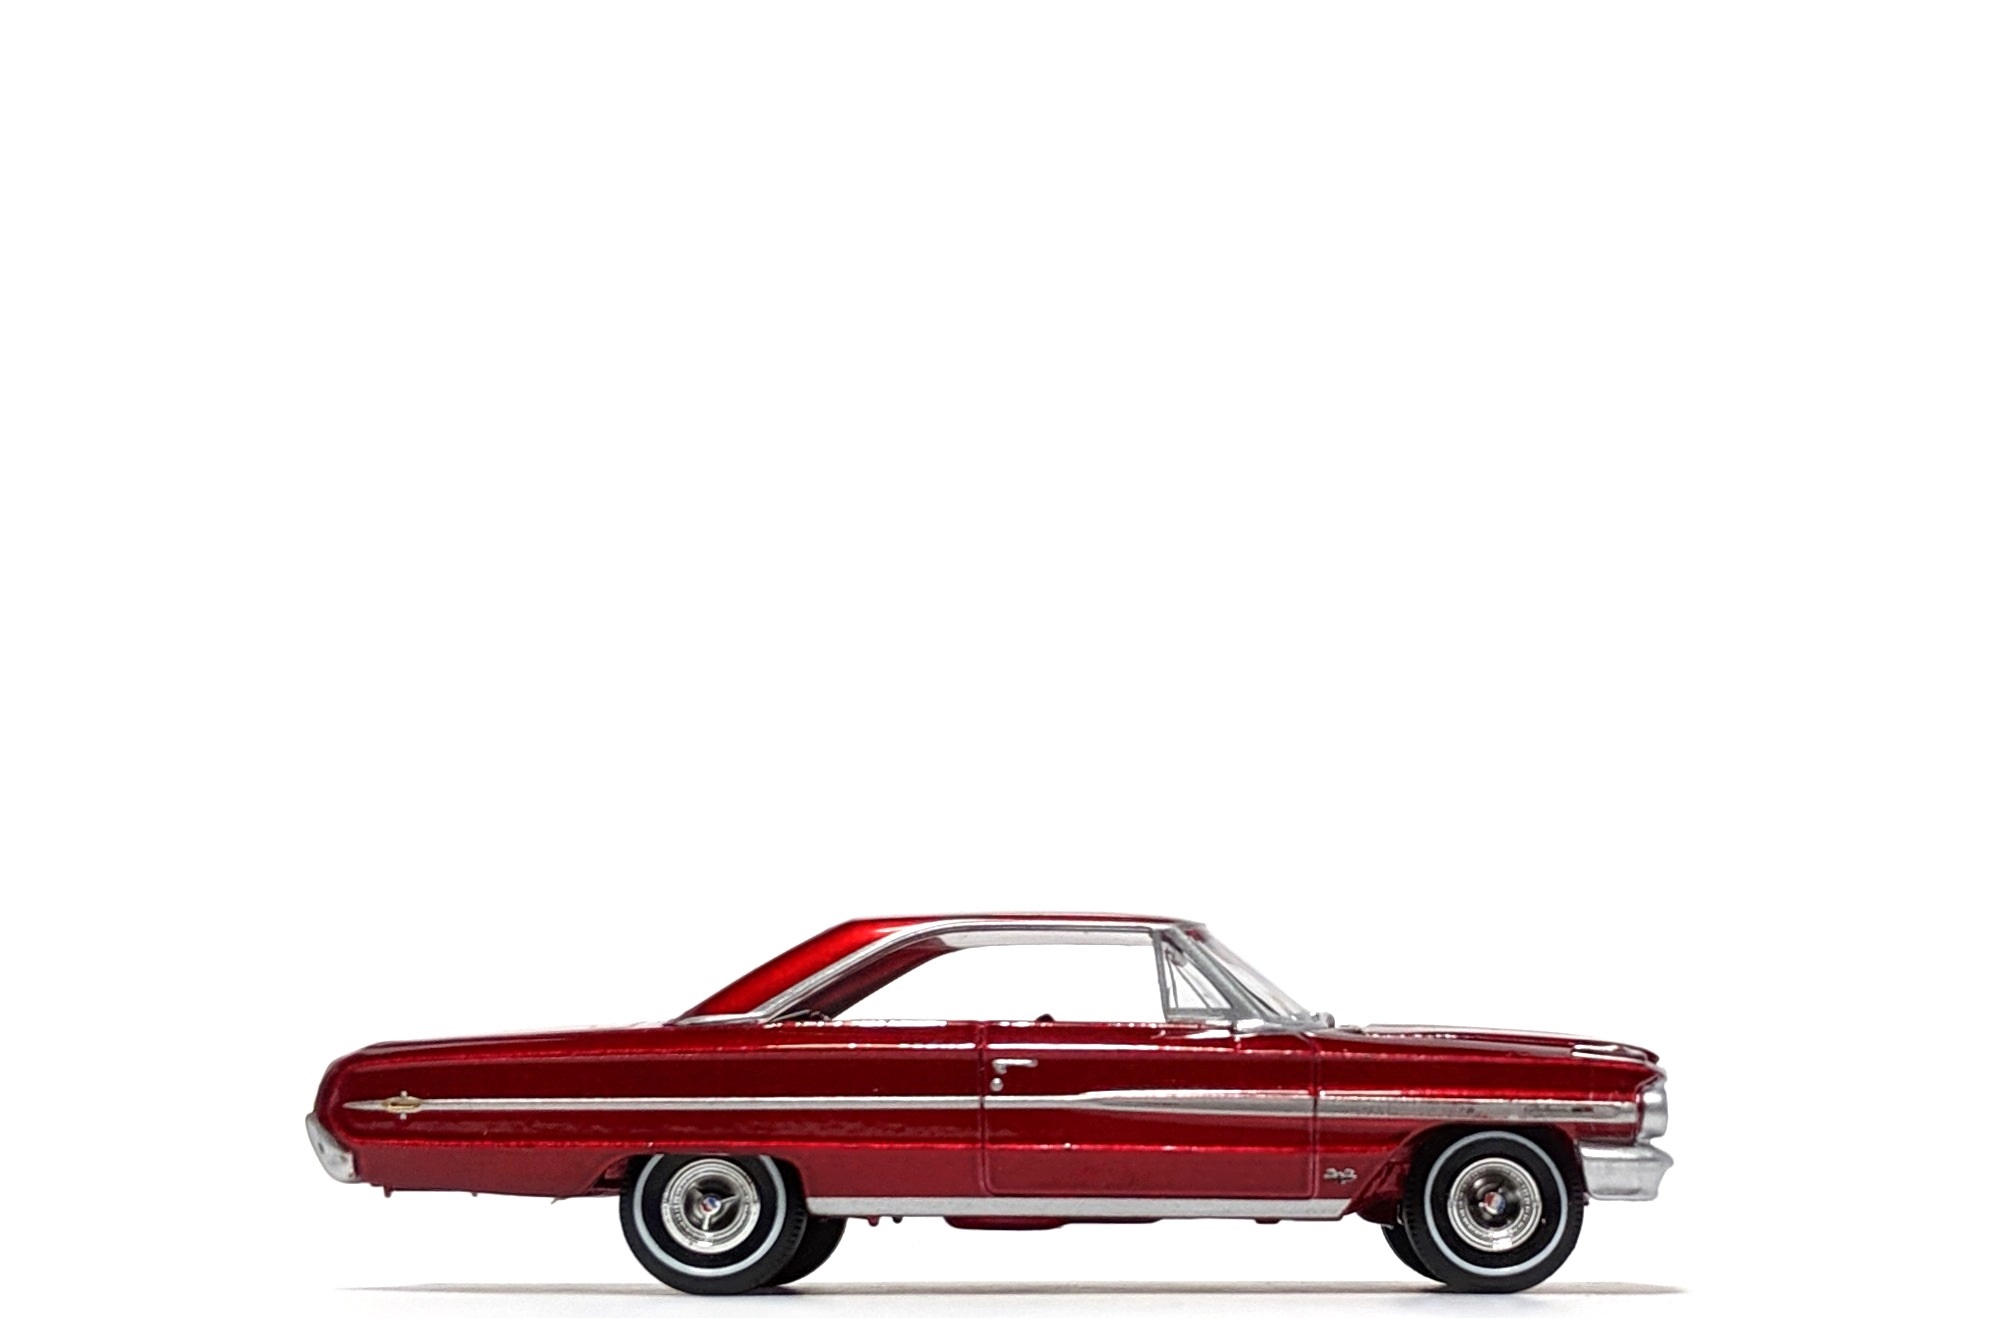 1964 Ford Galaxie 500 XL (Ultra Red), by Auto World